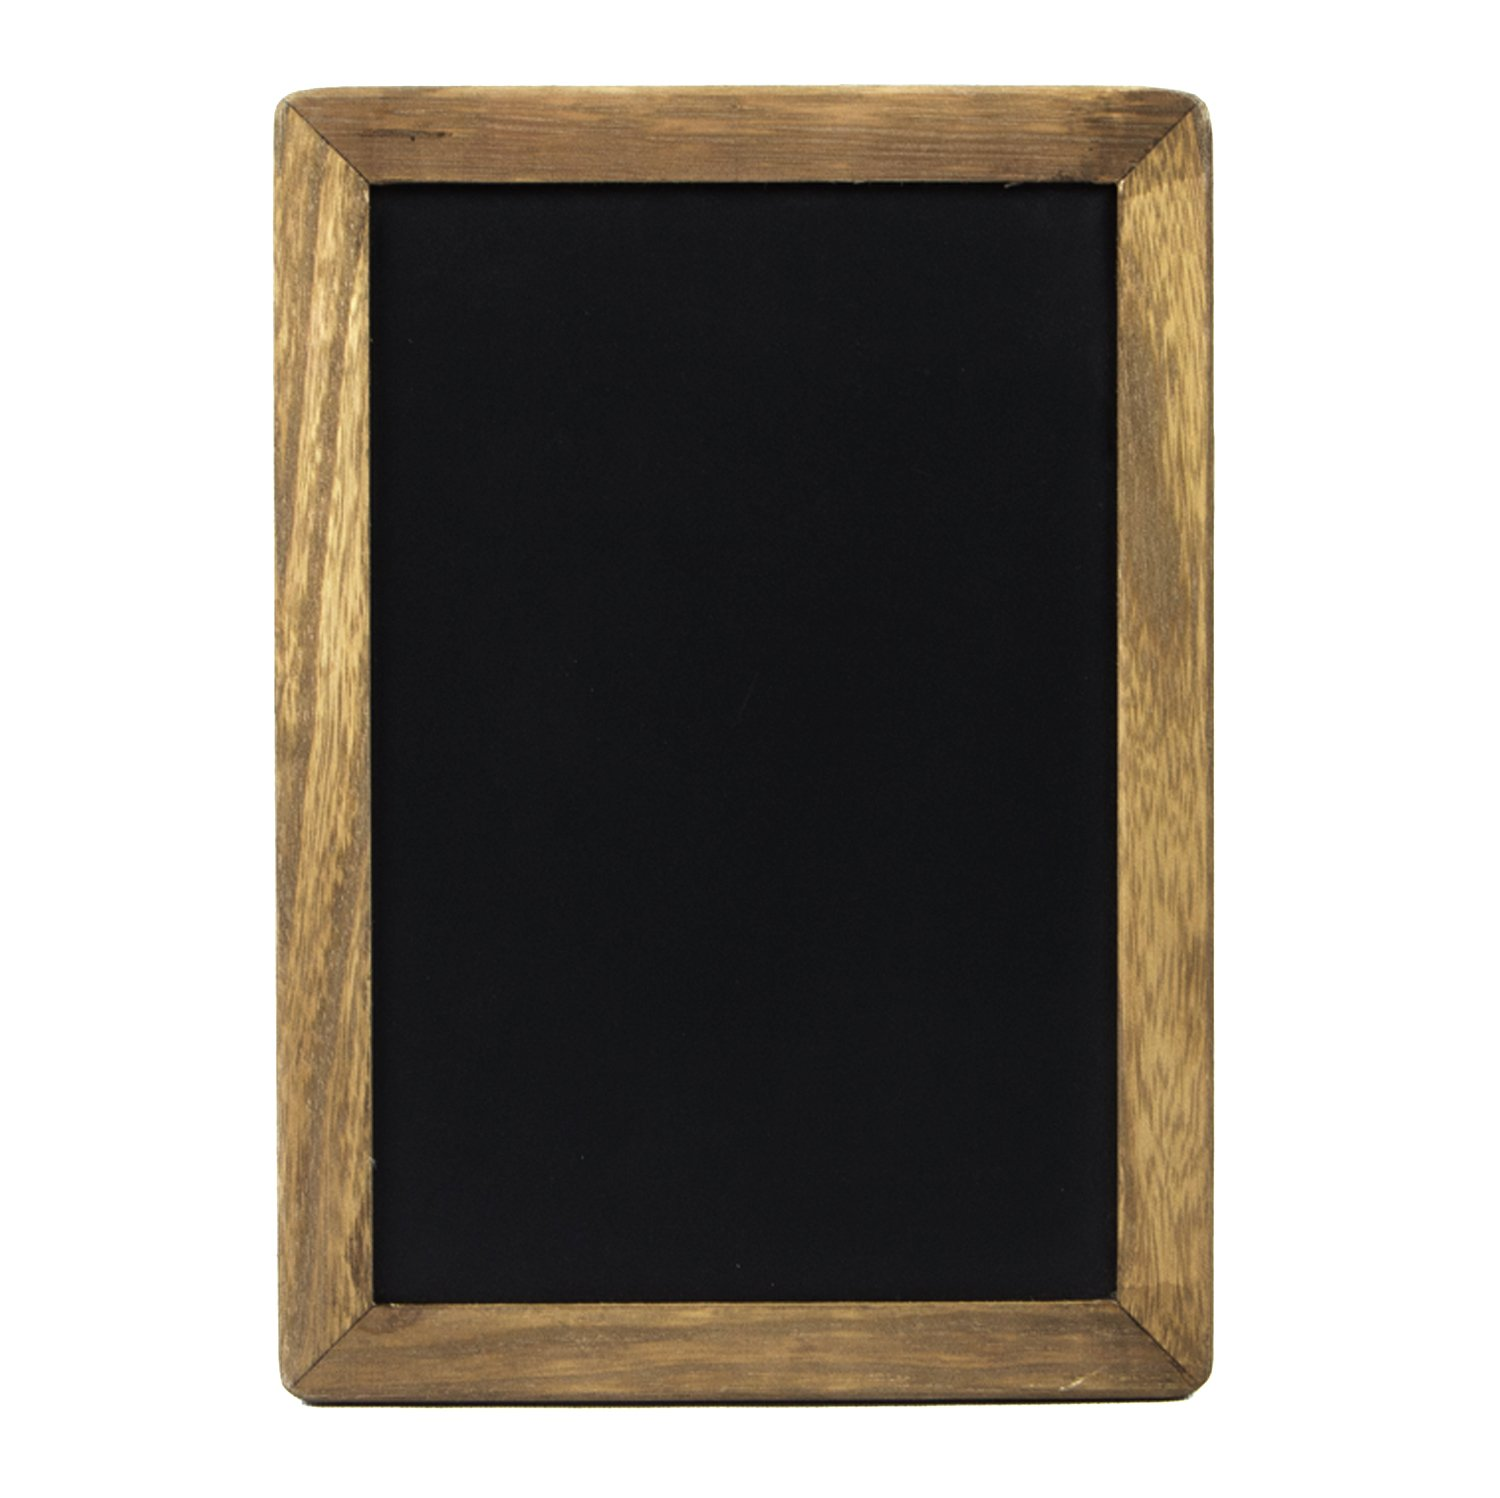 Rustic Kitchen Chalkboard Menu Sign (10x14'') with Wood Frame and Non Porous Magnetic Chalk Board Surface for Vintage Decor for Restaurant, Bar Countertop, Wedding, and Home